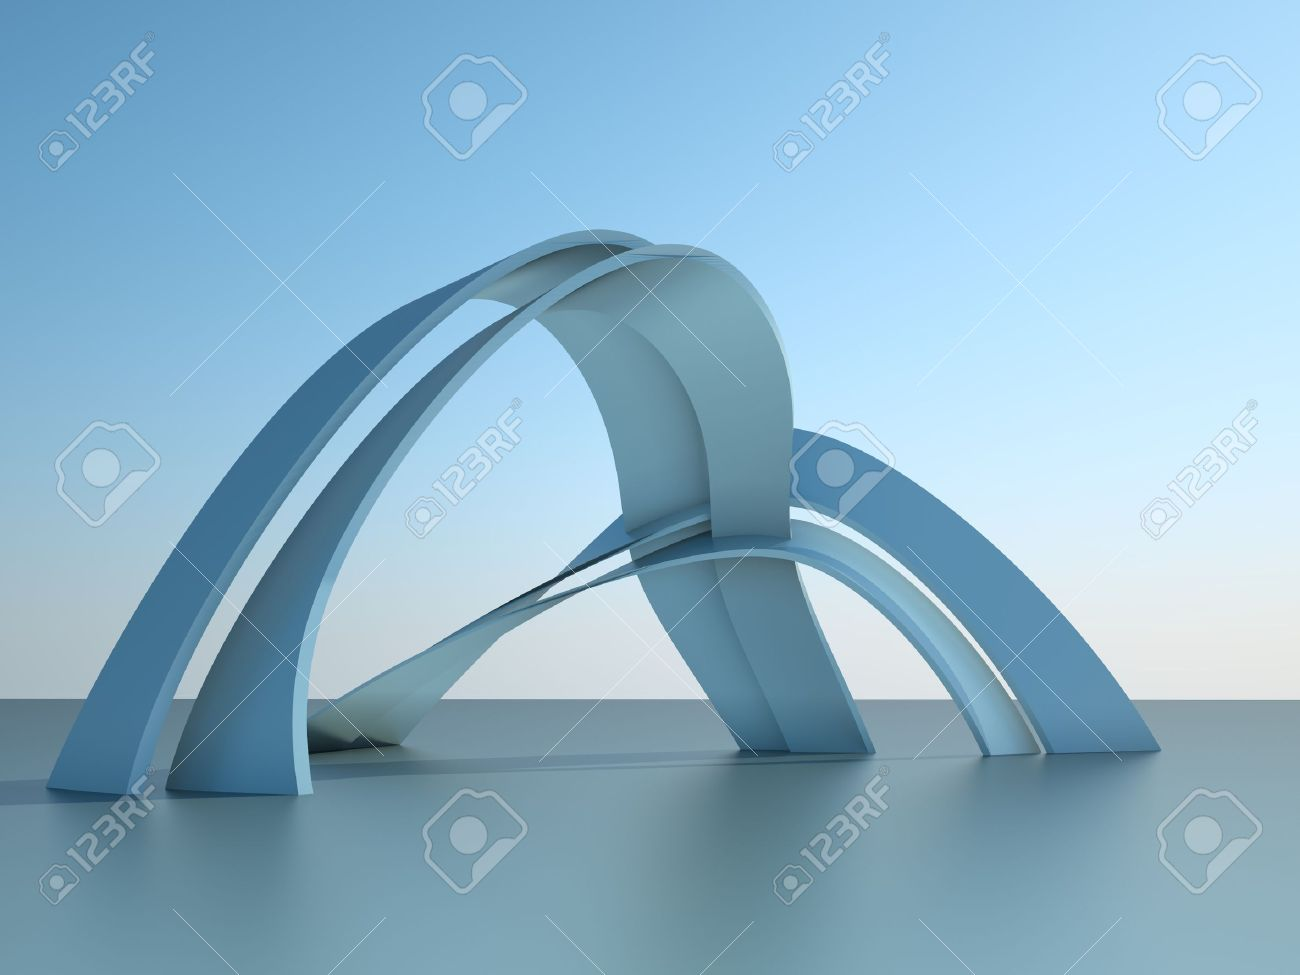 Modern Architecture Arches 3d illustration of a modern architecture building with arches